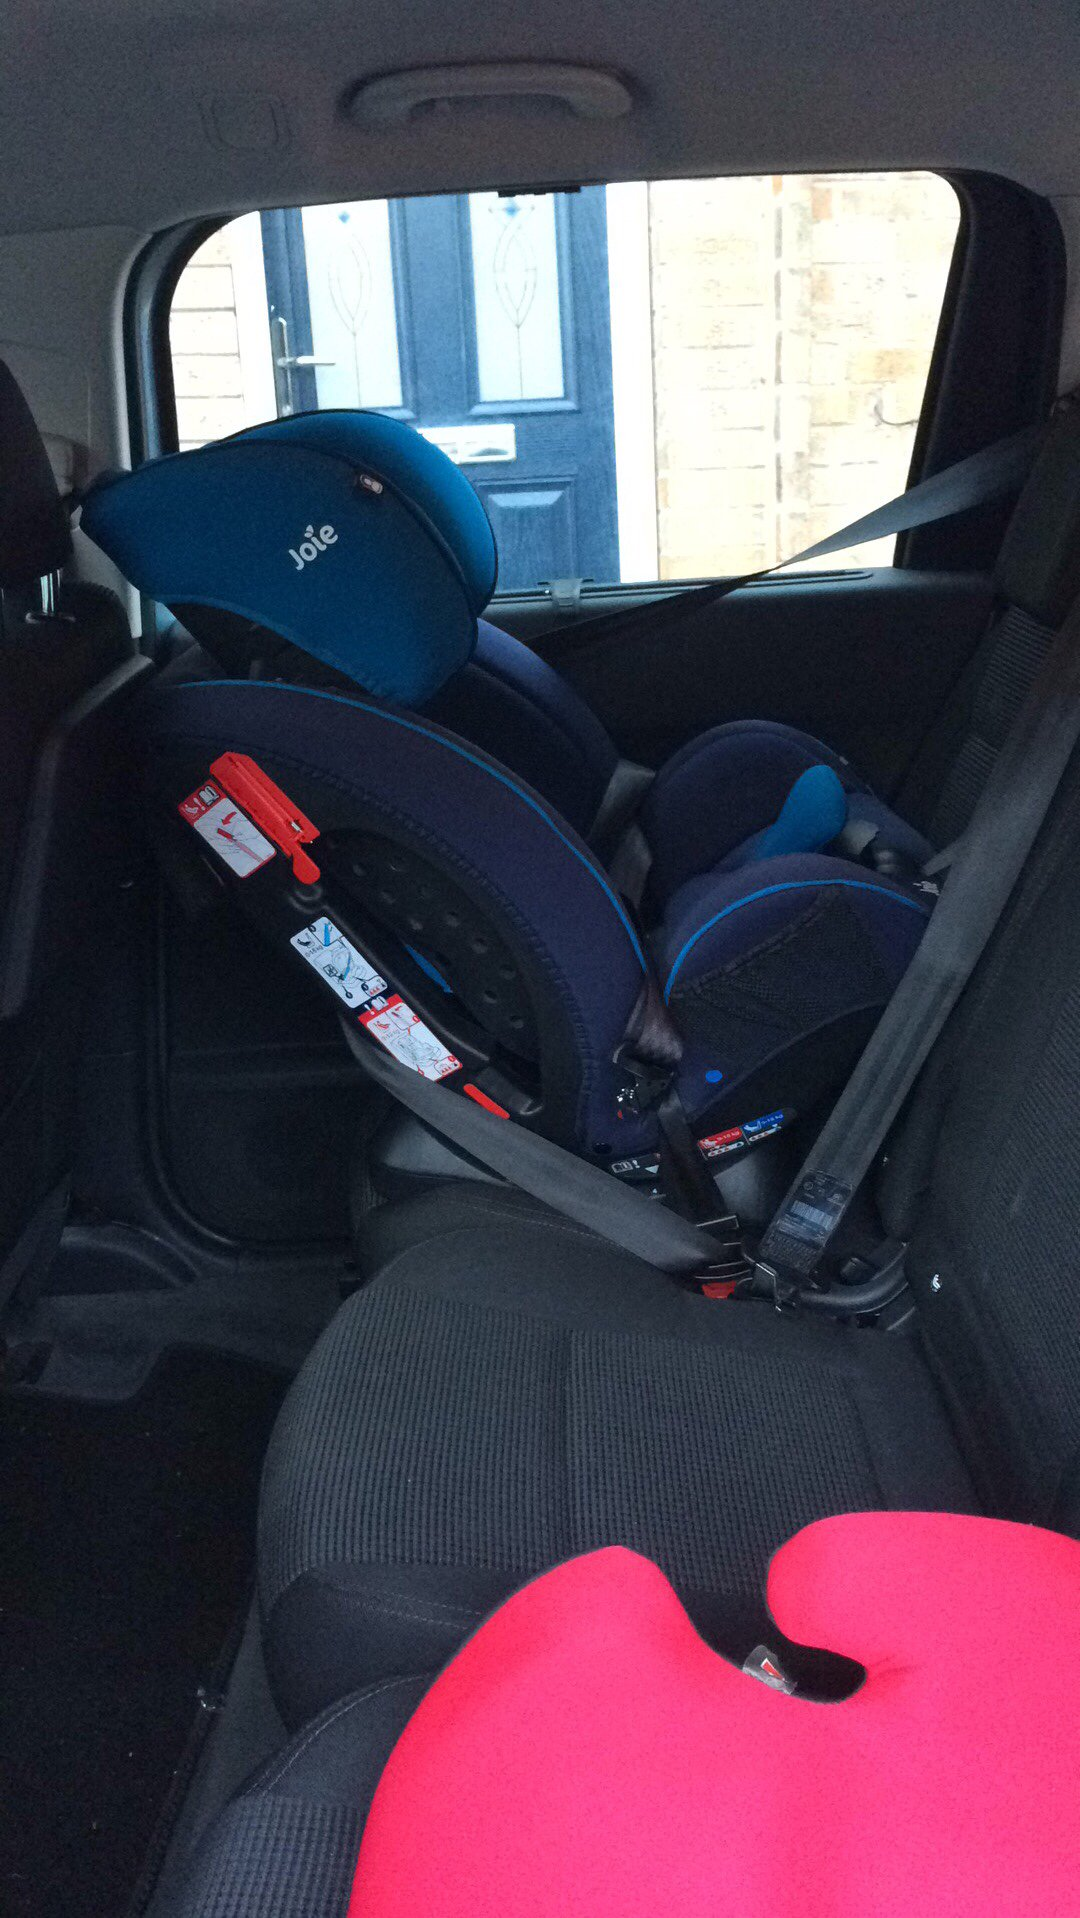 Maxi Cosi Car Seat On Mothercare Xpedior Mazda Bongo Ford Freda Car Seat Netmums